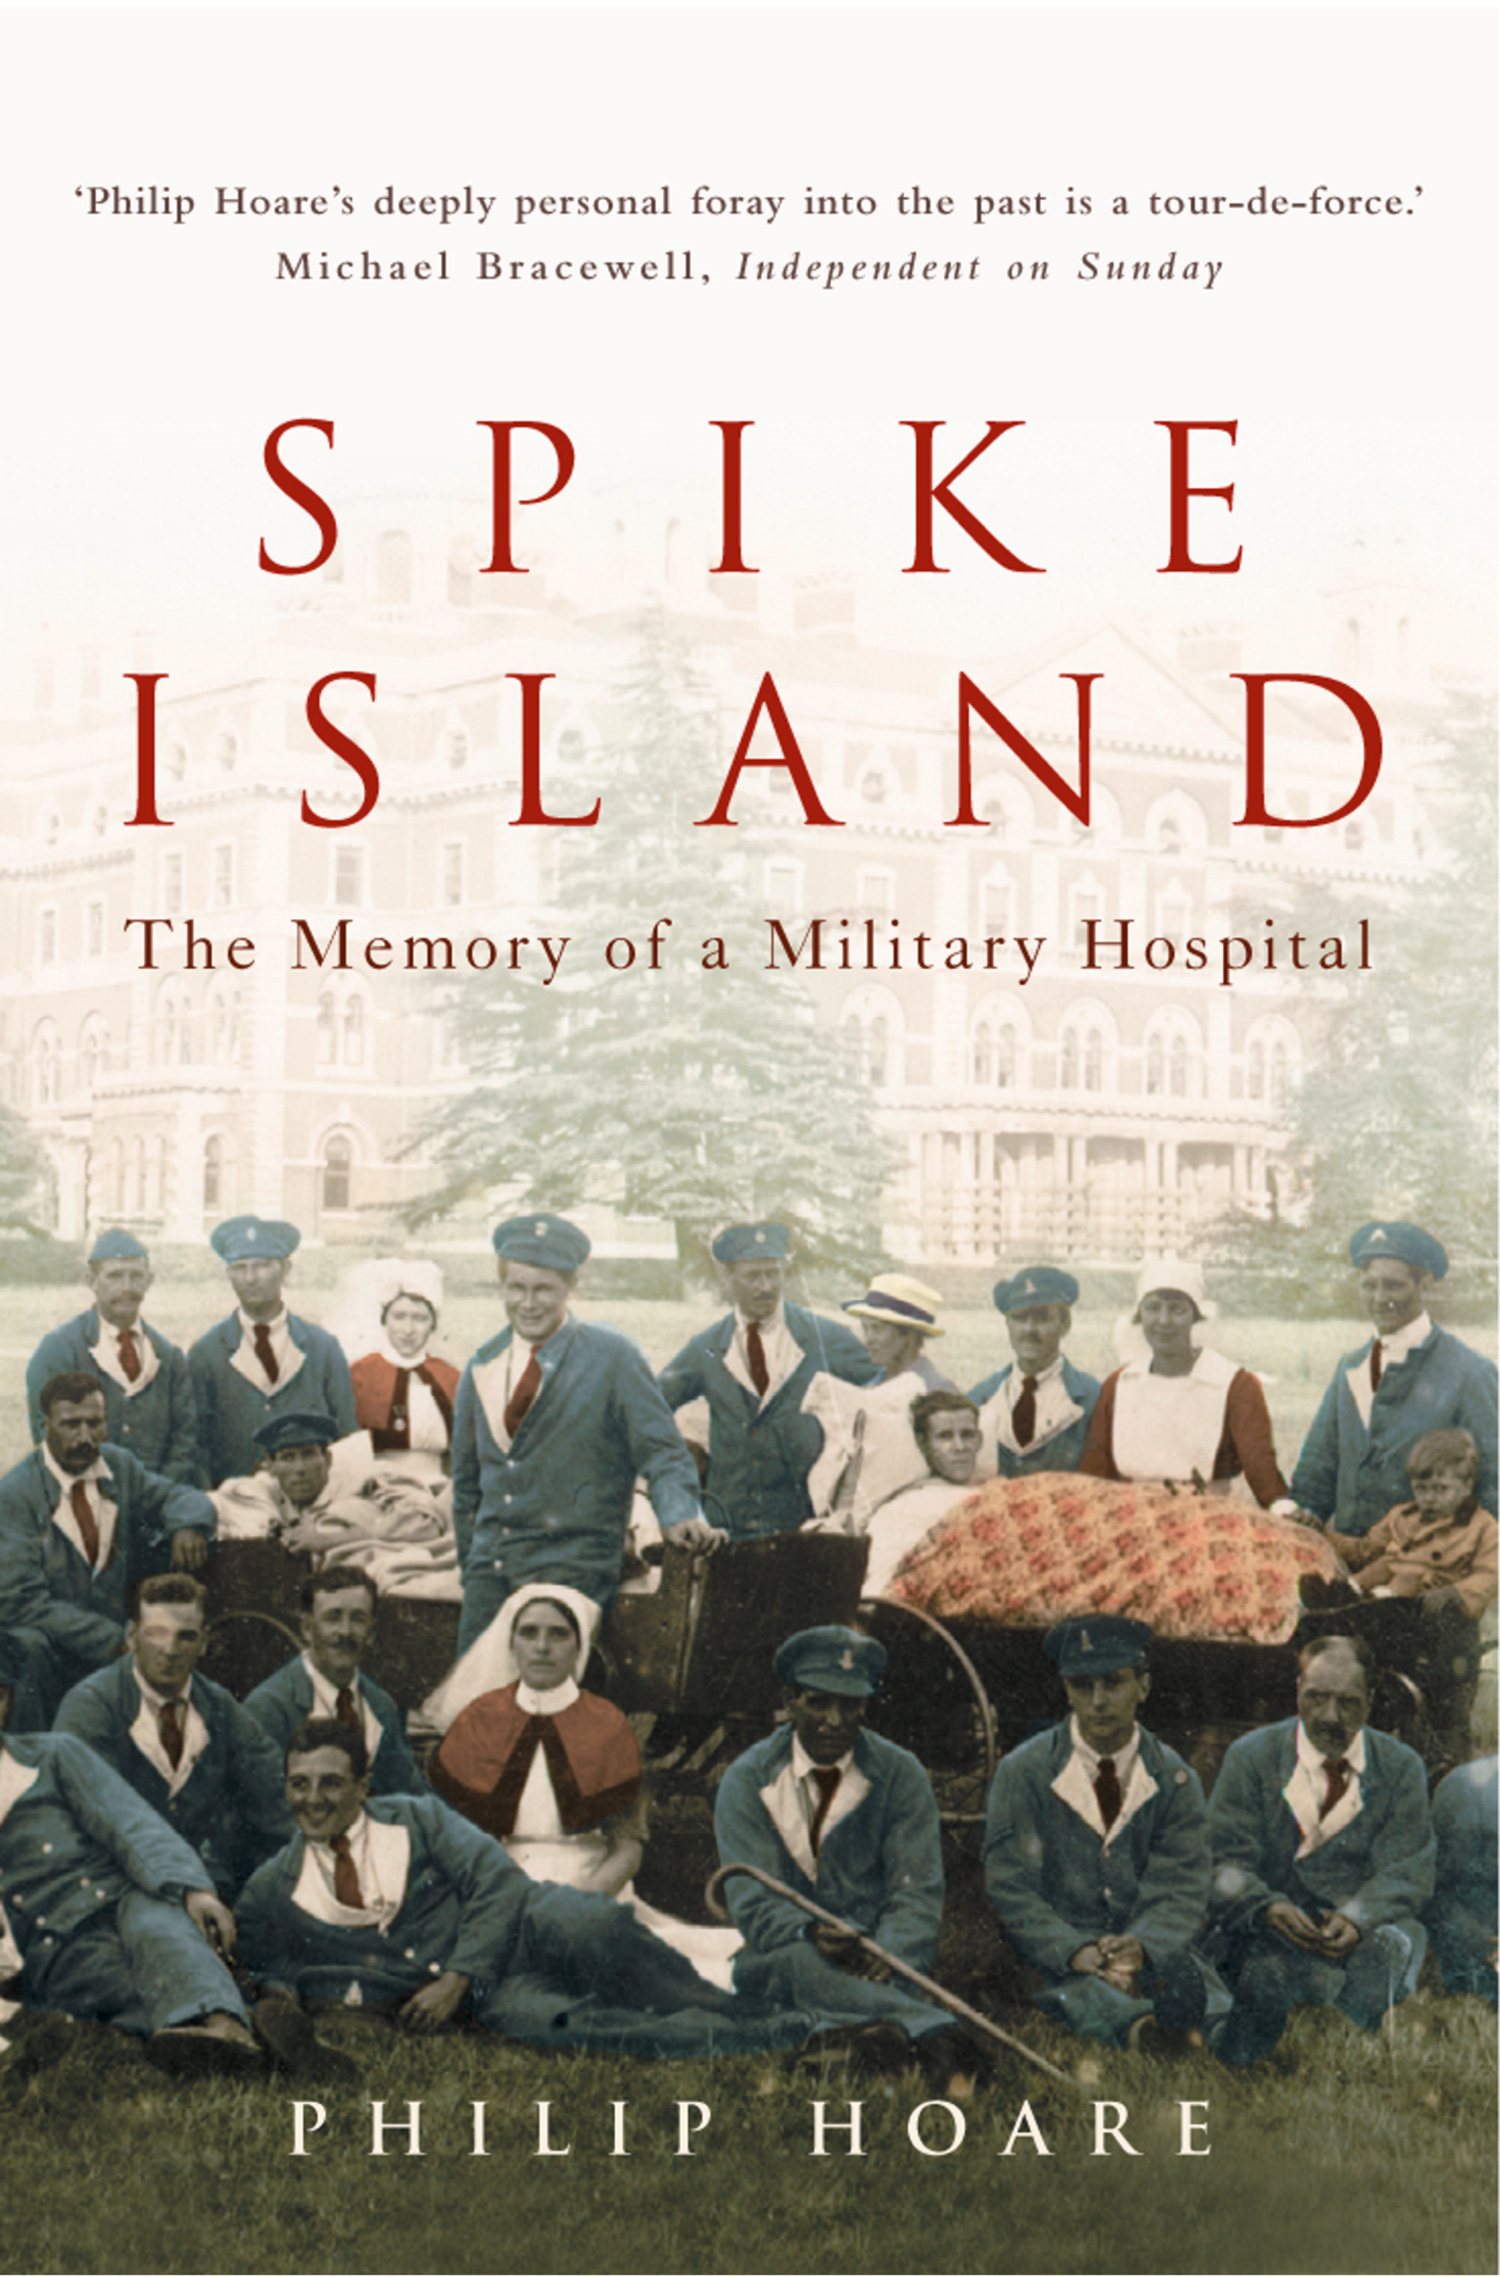 Spike Island: The Memory of a Military Hospital